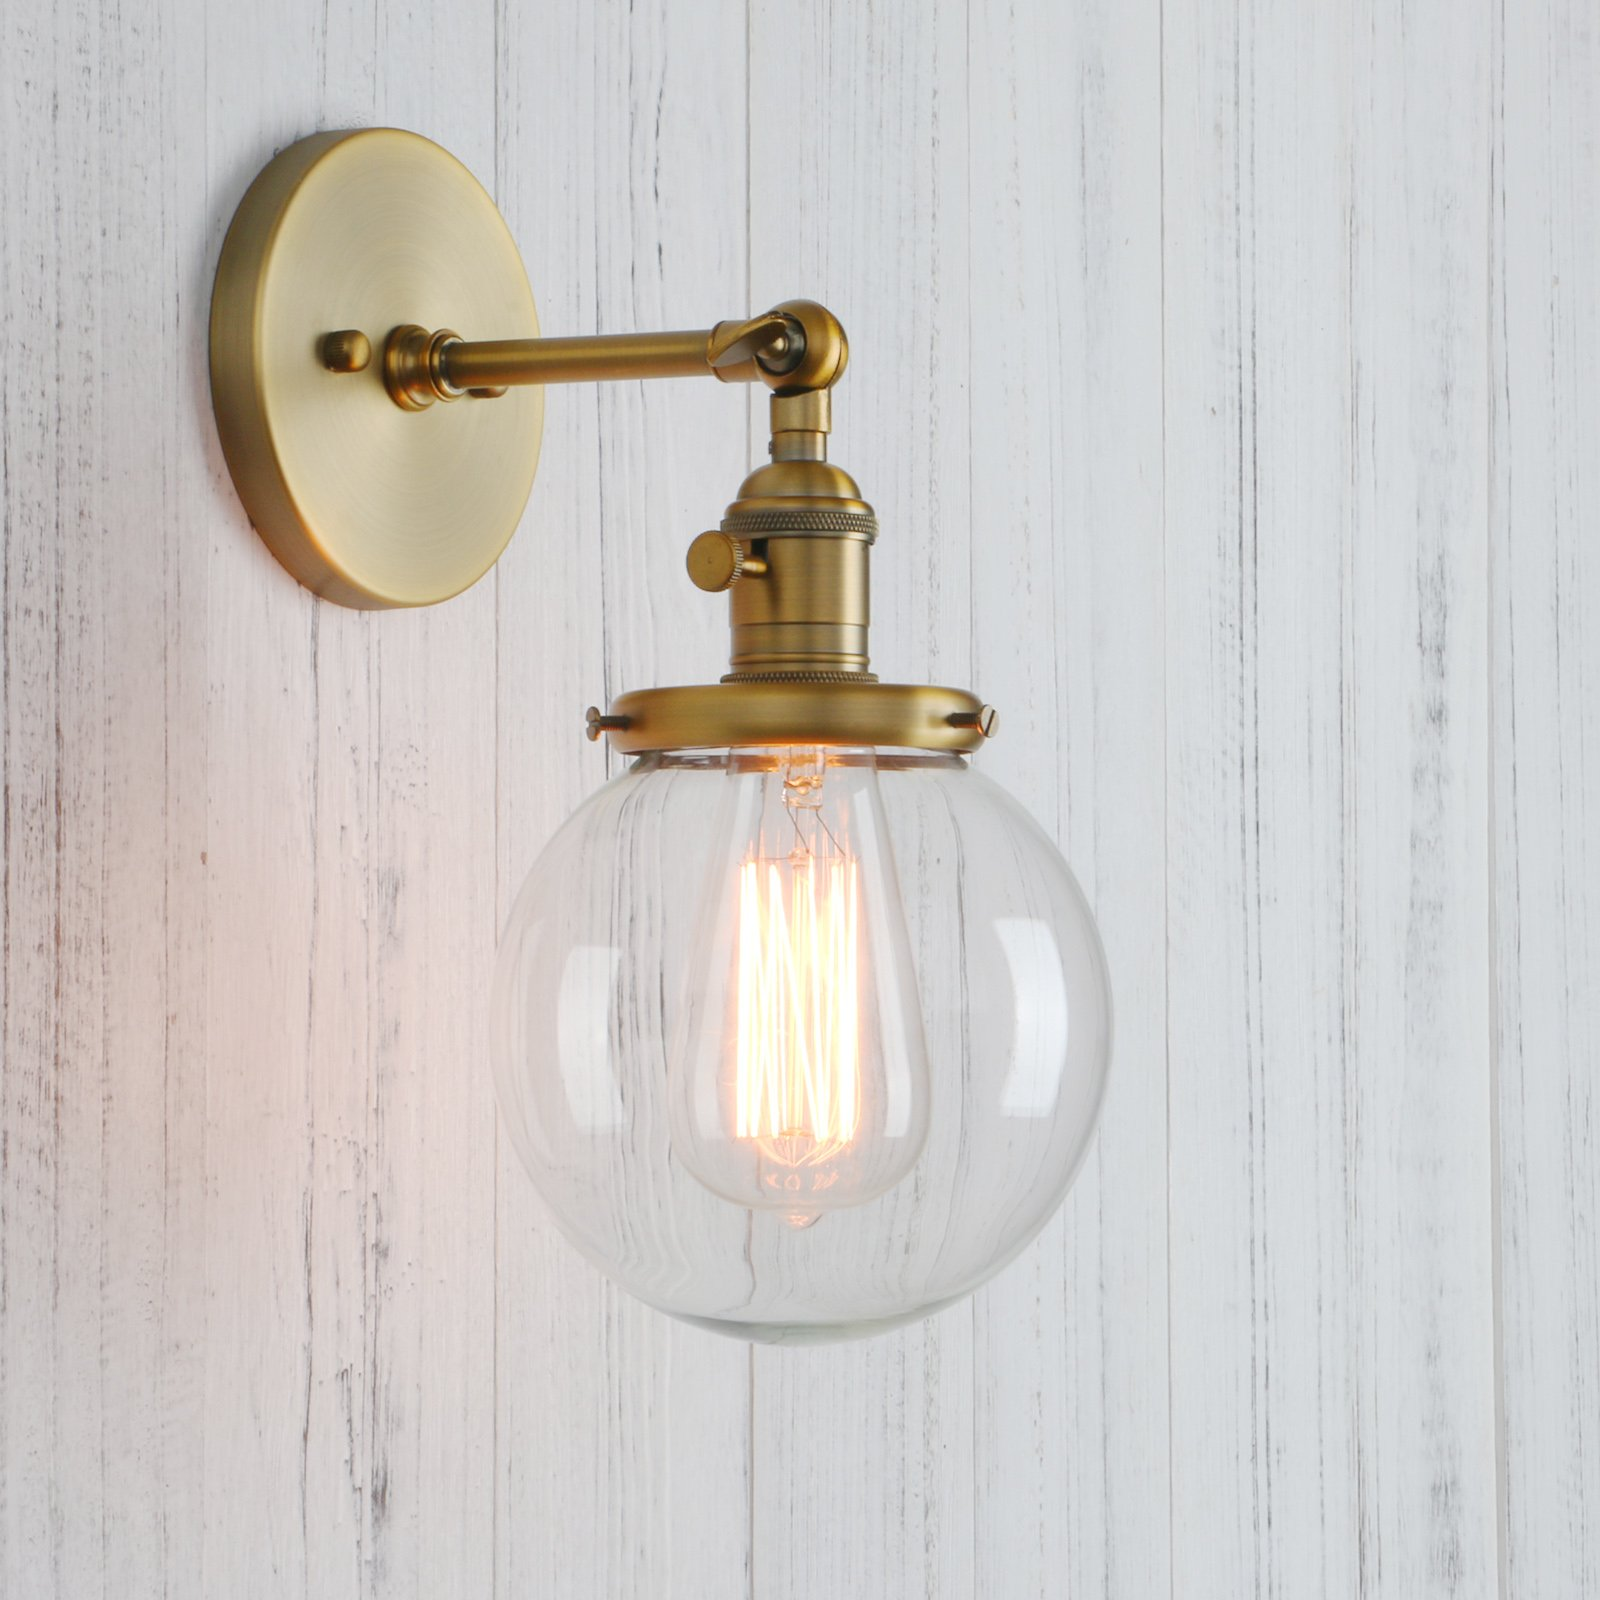 Permo Vintage Industrial Wall Sconce Lighting Fixture with Mini 5.9'' Round Clear Glass Globe Hand Blown Shade (Antique)